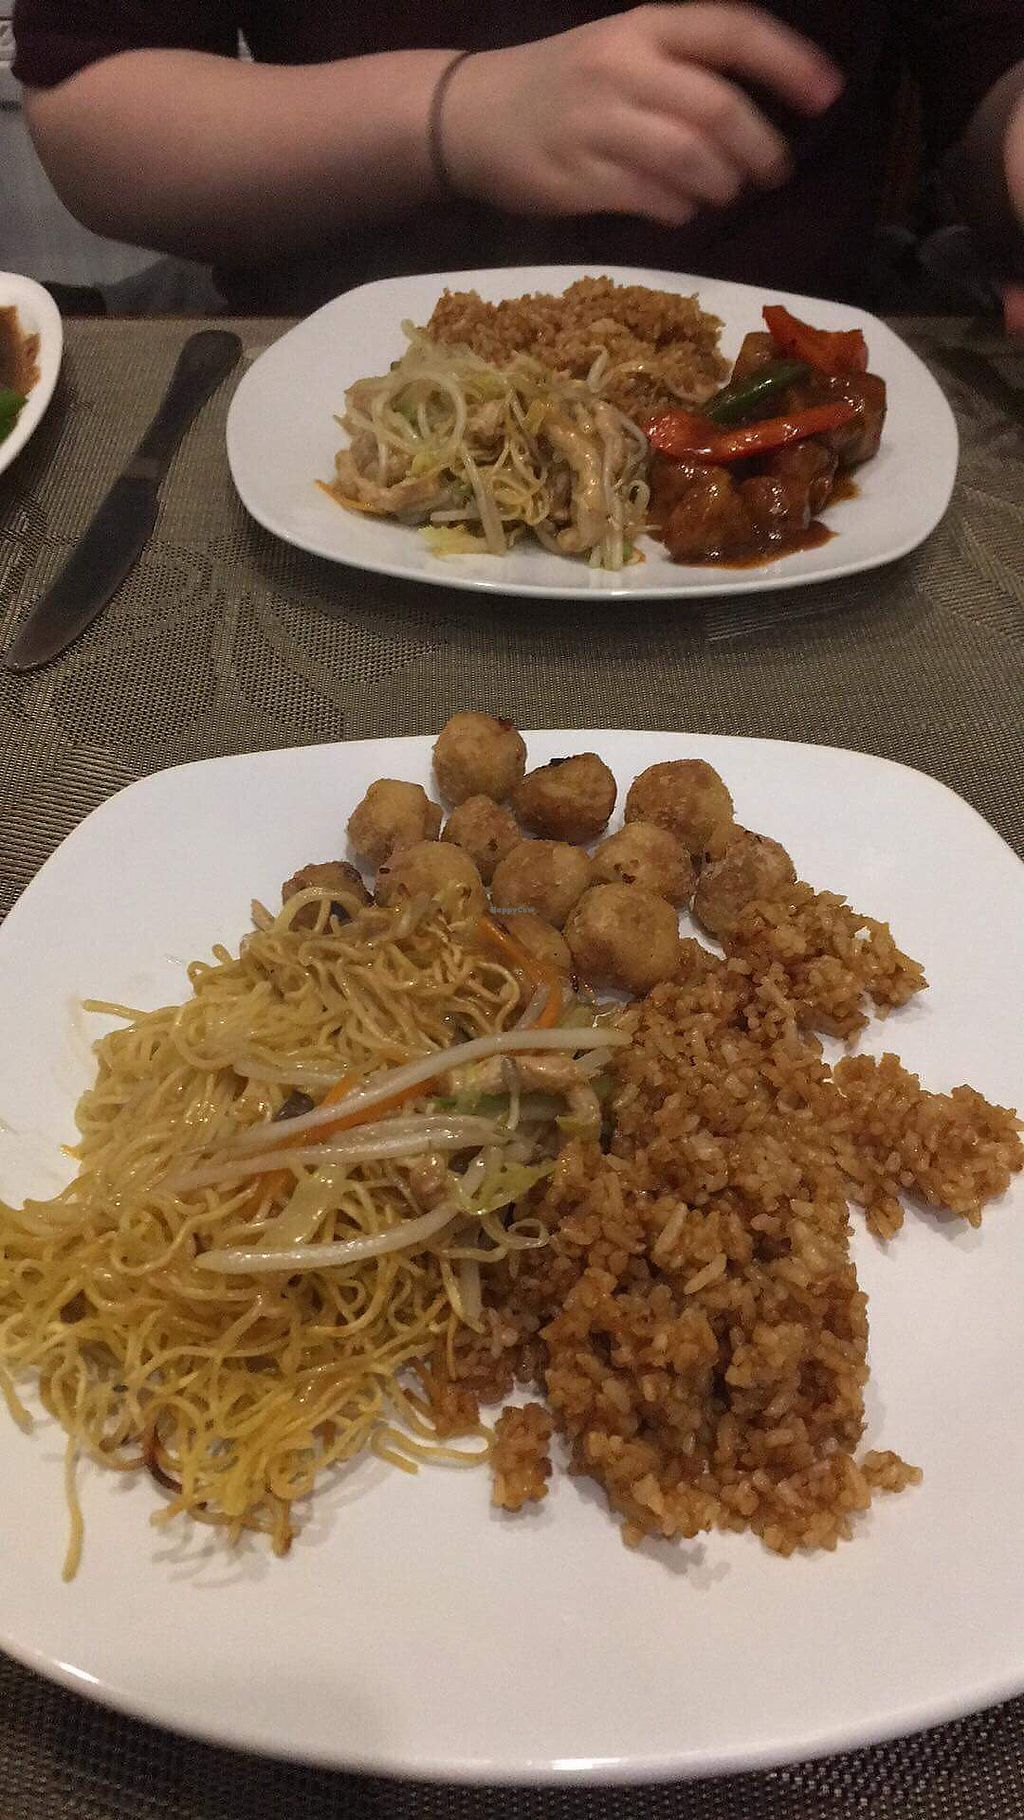 """Photo of Lotus Vegetarian Cuisine  by <a href=""""/members/profile/katebelcher5"""">katebelcher5</a> <br/>Shredded pork chow mein, fried rice, satay chicken/salt and chilli chicken <br/> December 22, 2017  - <a href='/contact/abuse/image/85472/338127'>Report</a>"""